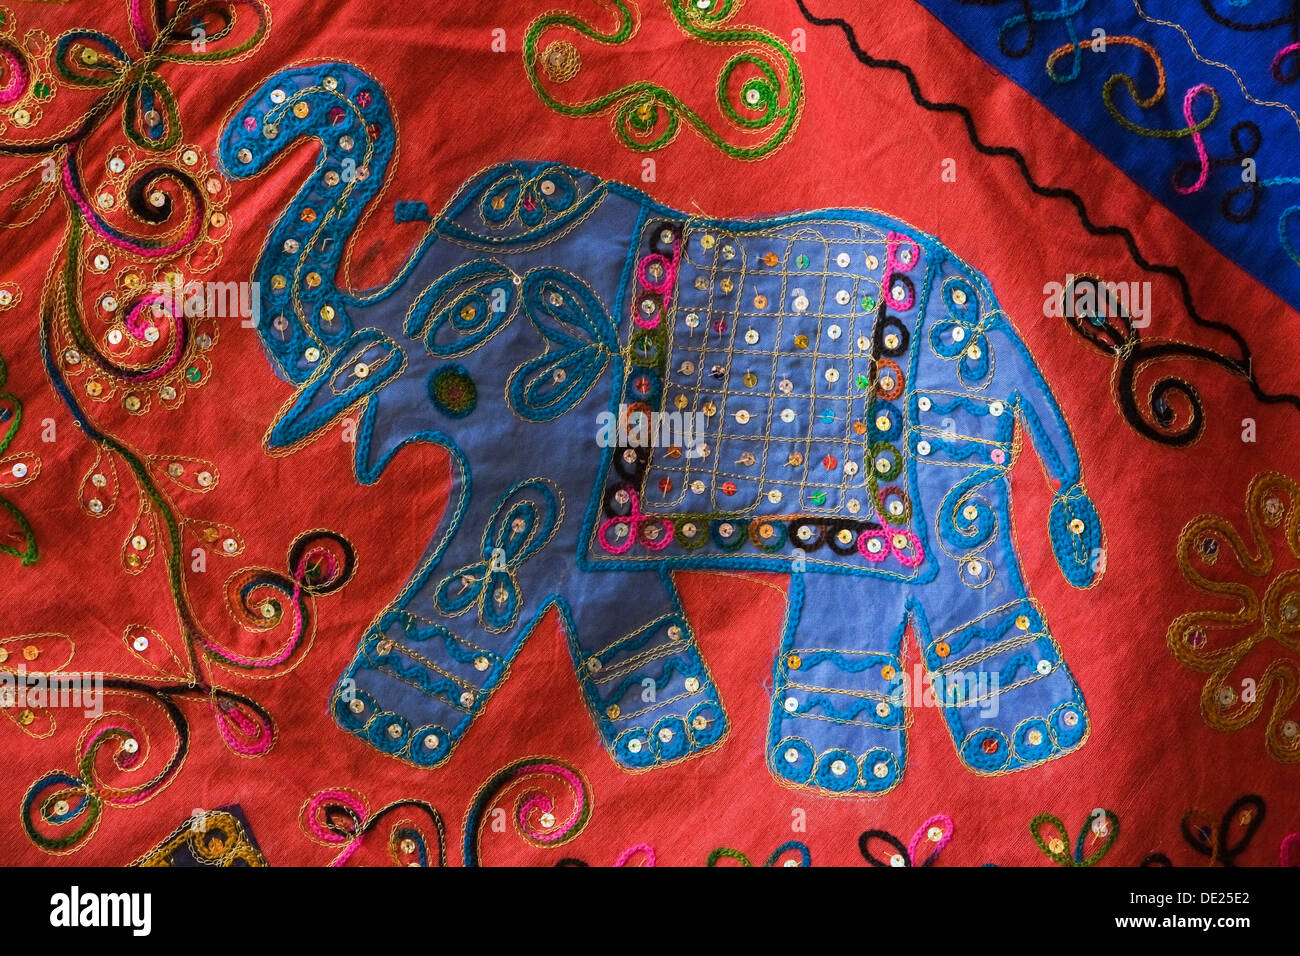 Embroidered elephant on a piece of cloth, at an Arab souk, Granada, Granada province, Andalusia, Spain - Stock Image